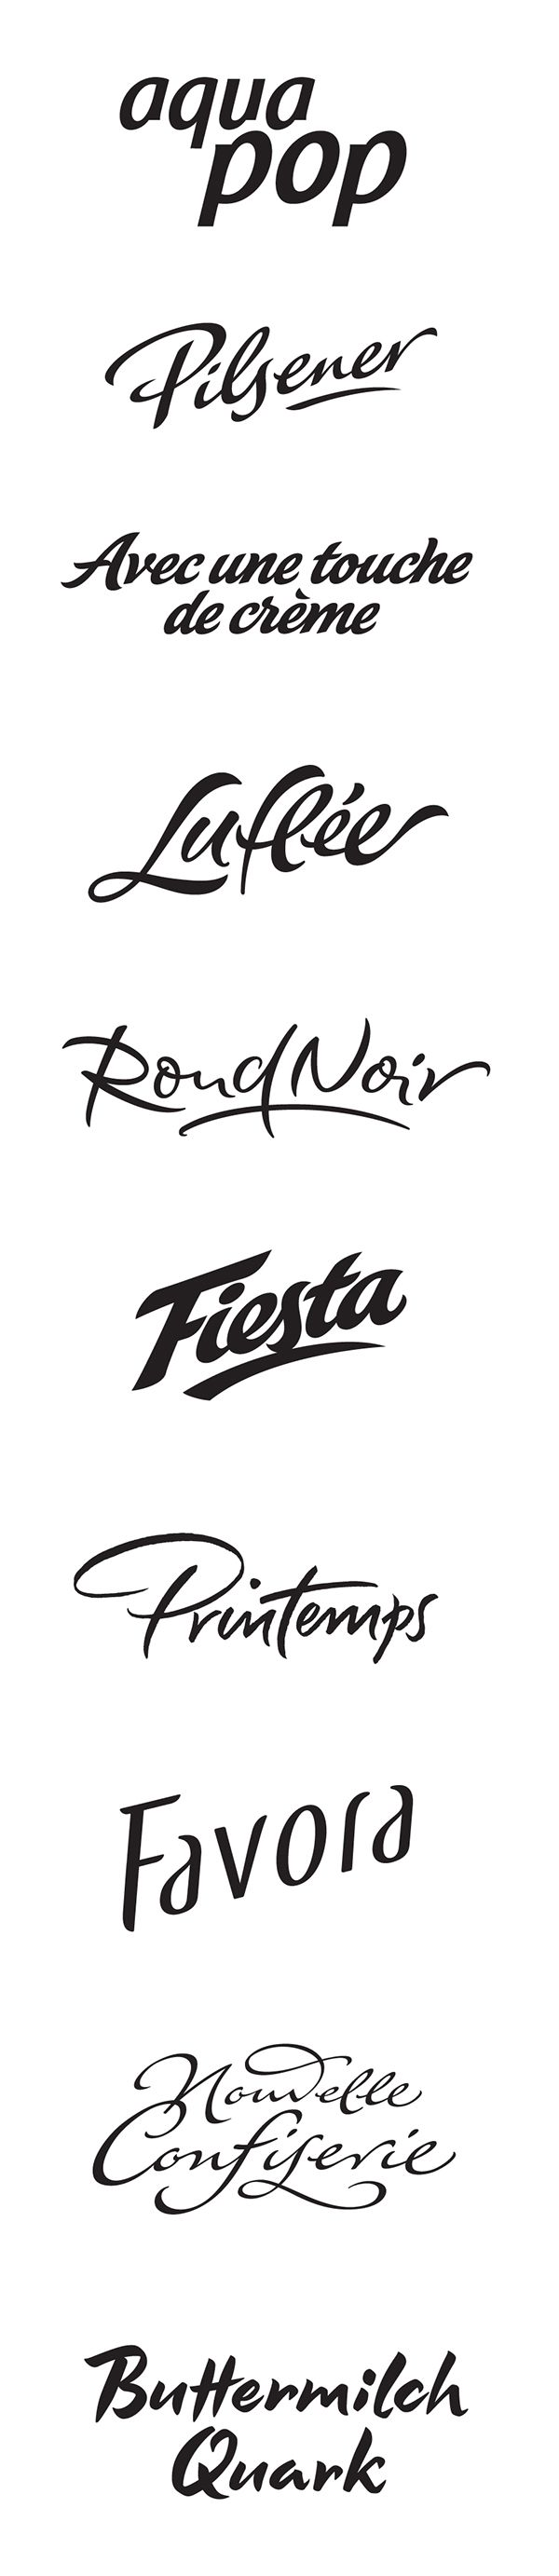 Typeverything.com - Commercial Logotypes by Peter Becker.